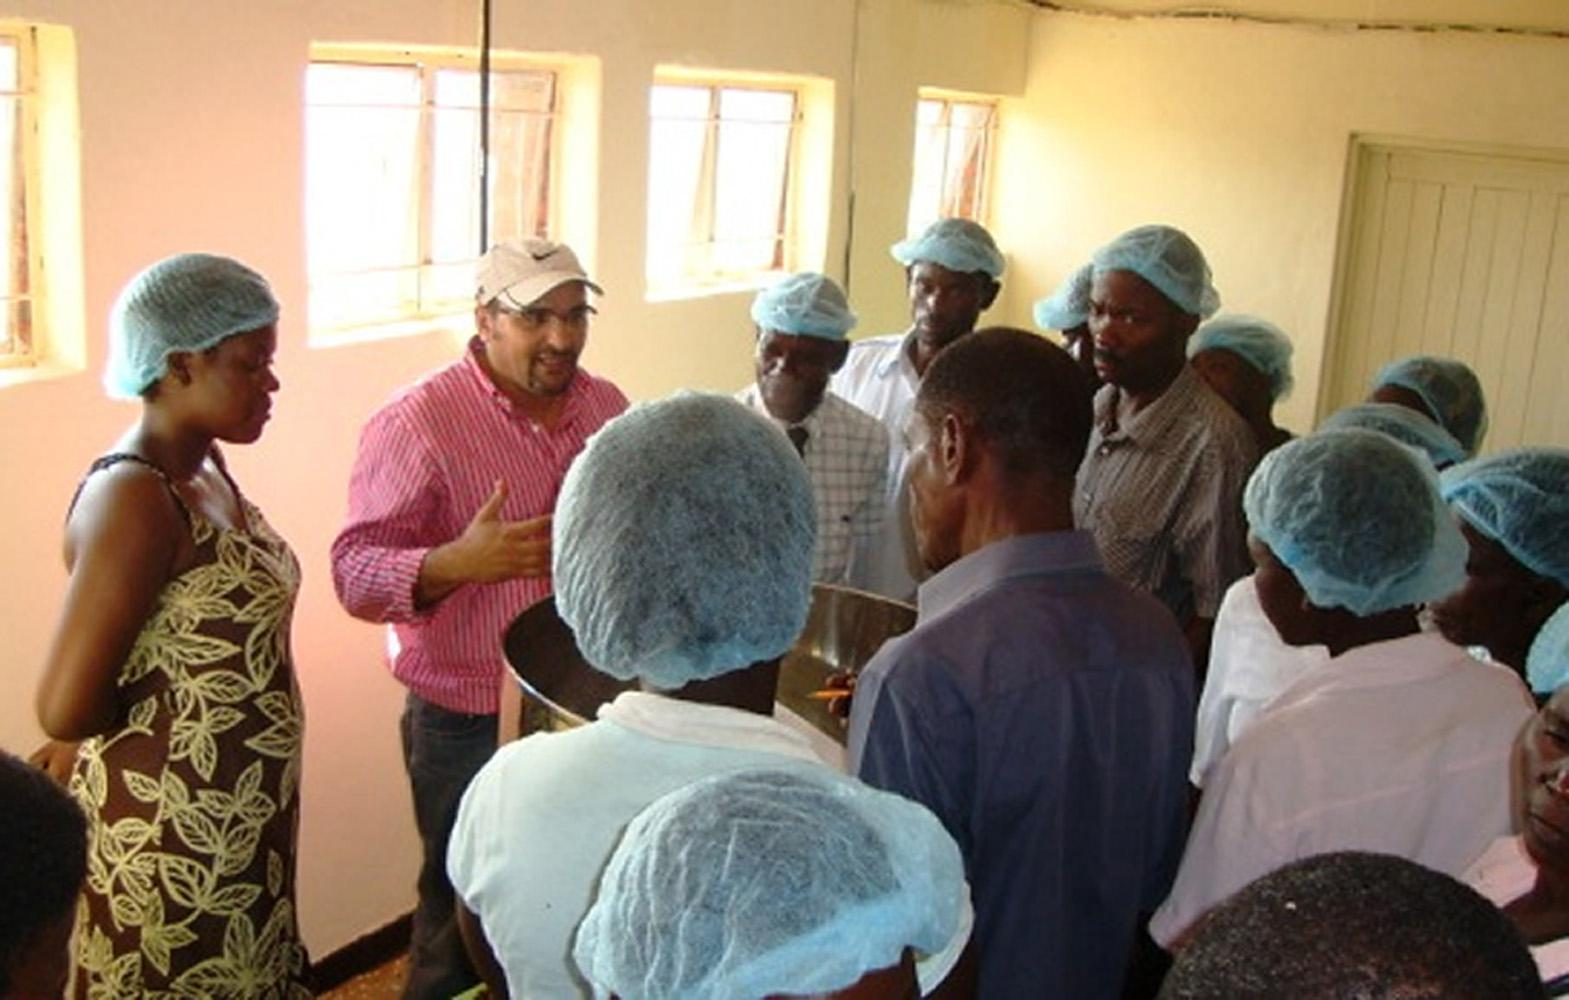 Barakat Mahmoud, a food scientist at Mississippi State University's Experimental Seafood Processing Laboratory, volunteered in Malawi to help a community-based company improve their production of juice and jams.